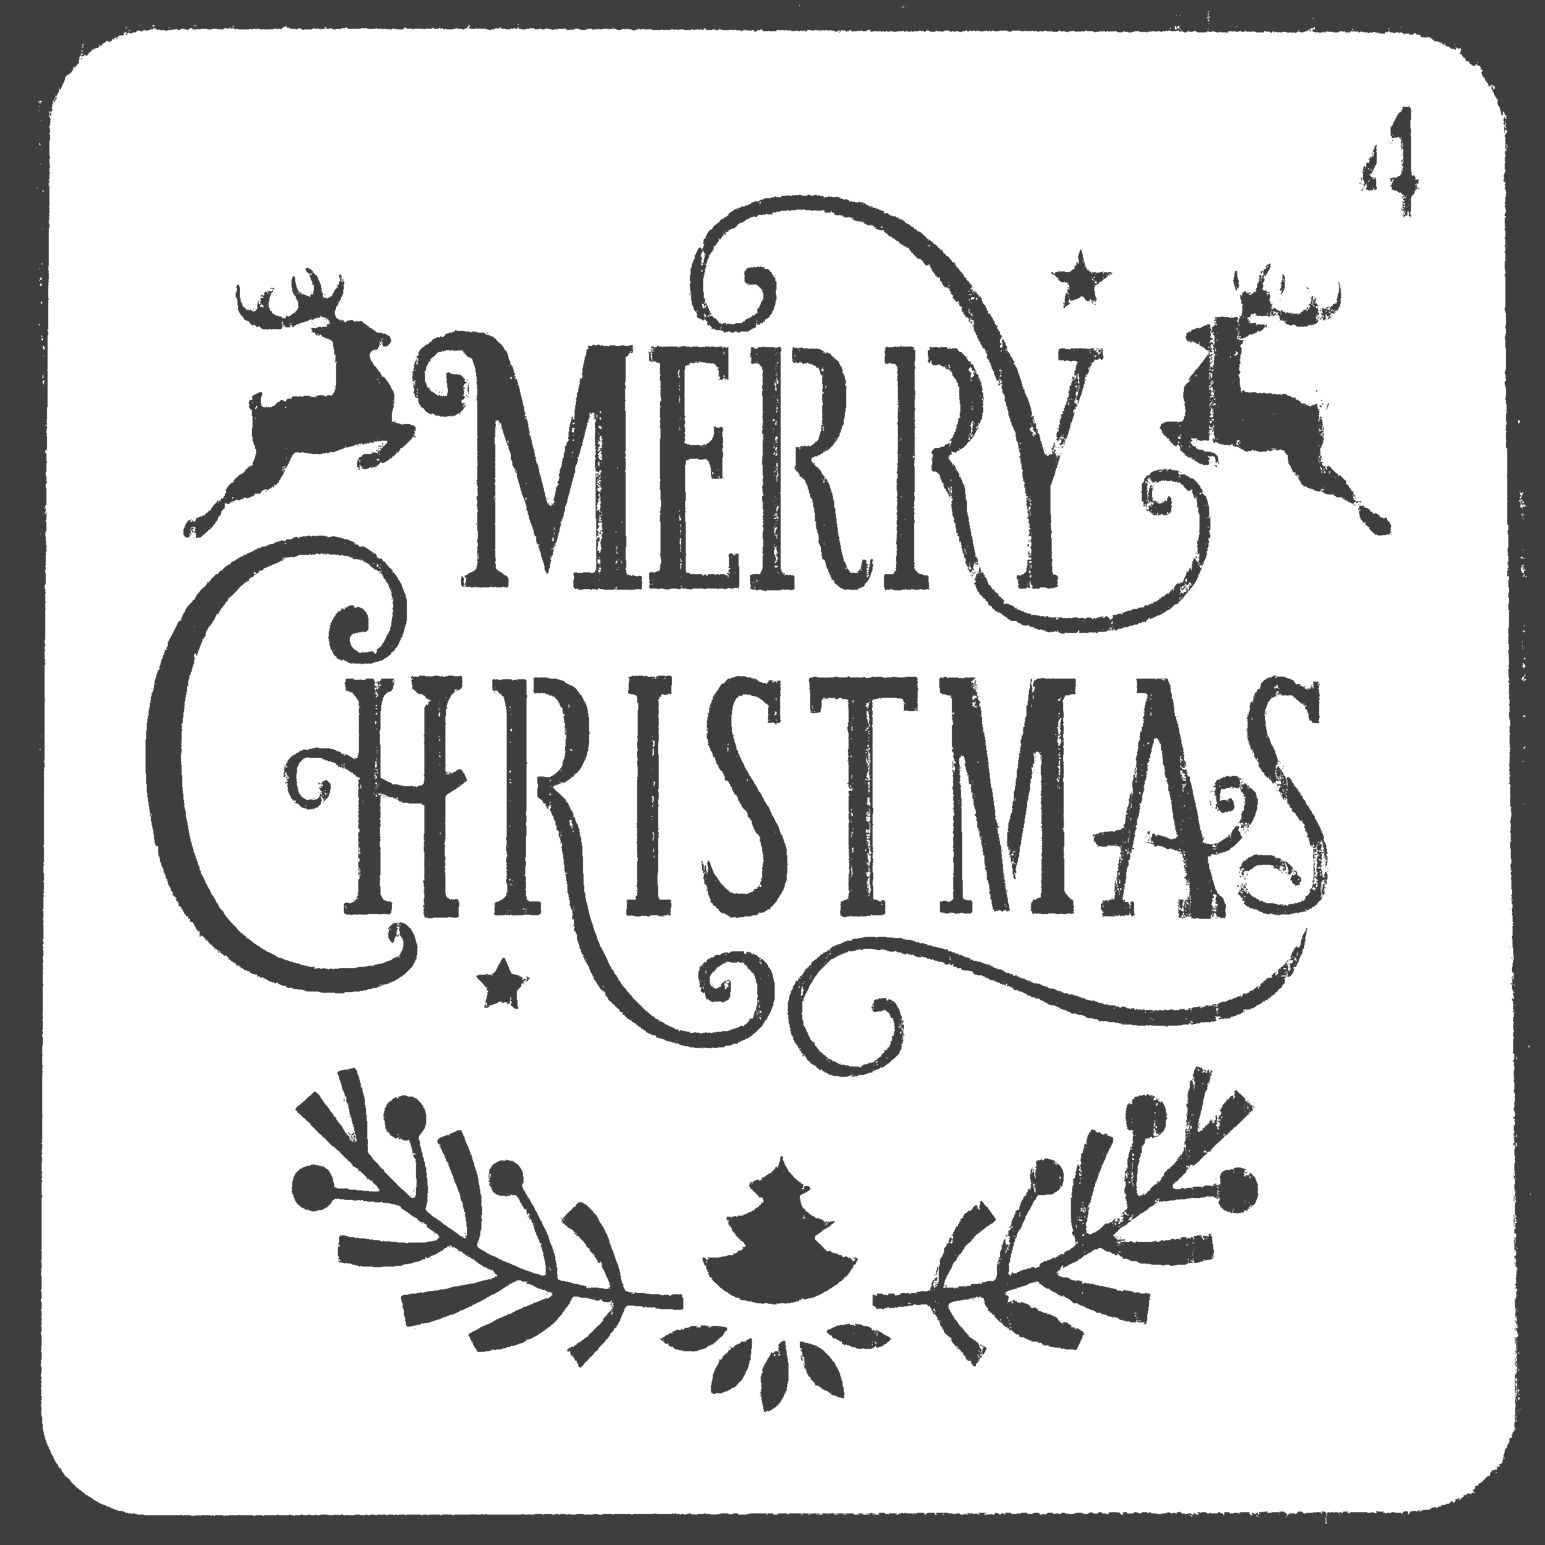 Merry Christmas Letter Stencils For Painting Scrapbooking Stamp Cake Decorating Tool Embossing Paper Cards Album DIY Decoration